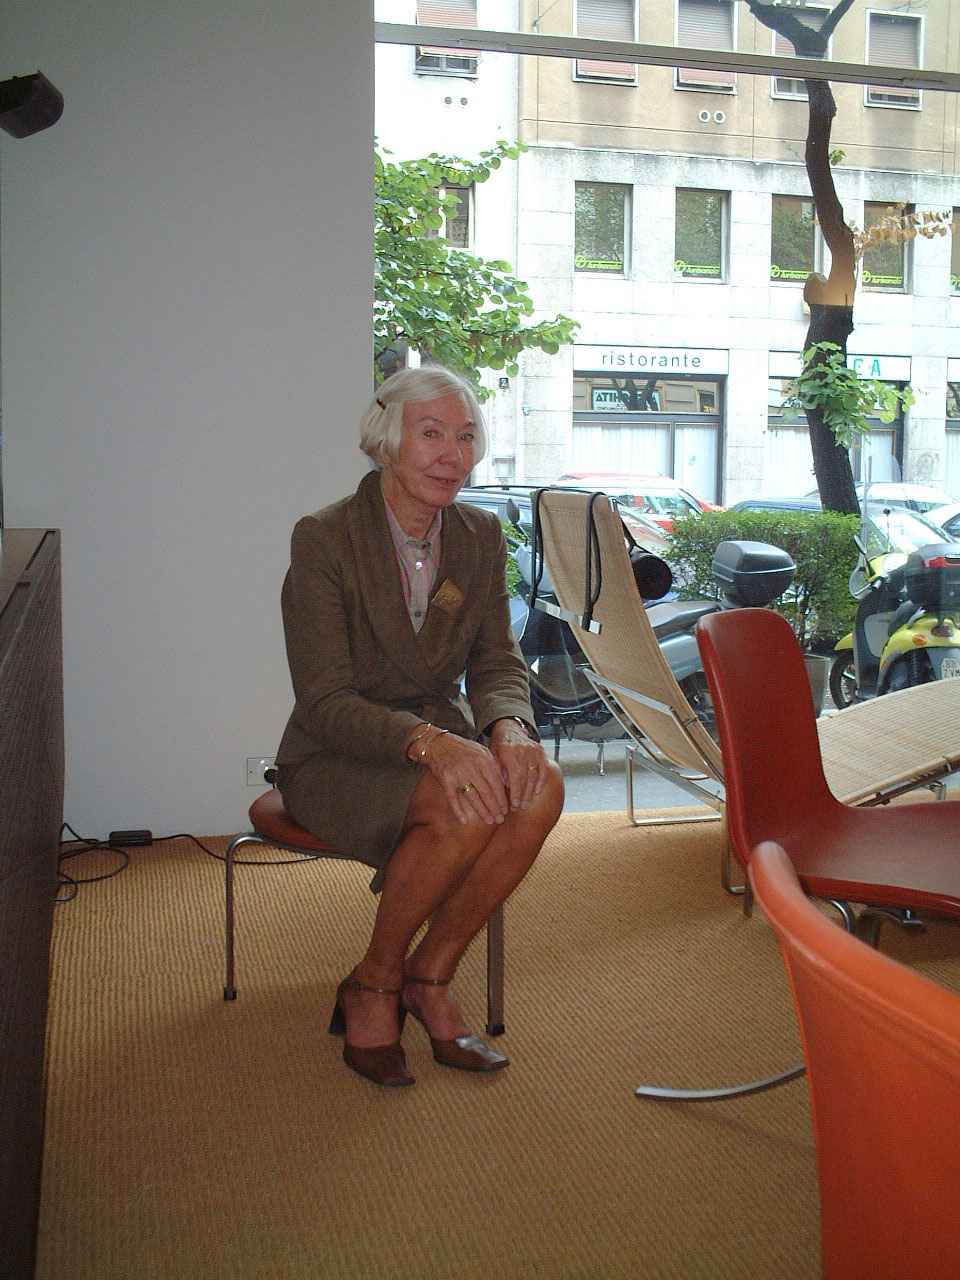 ottobre-2004-anne-kjaerholm-in-showroom